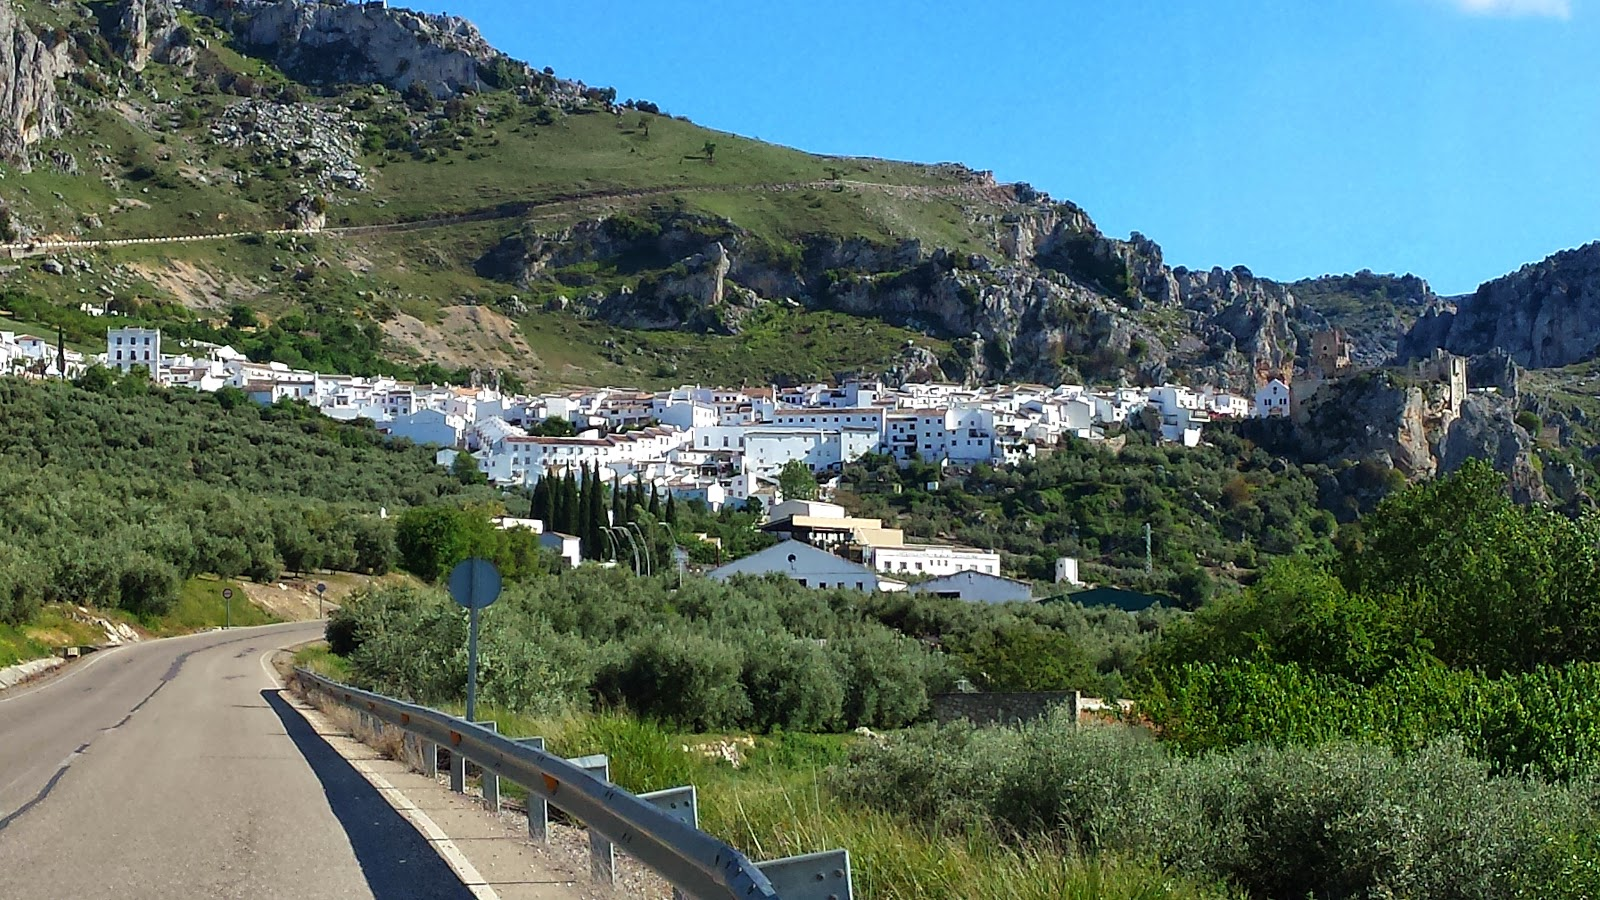 Zuheros, Andalucia is a perfect spot to stay on a Cycle Tour in Spain